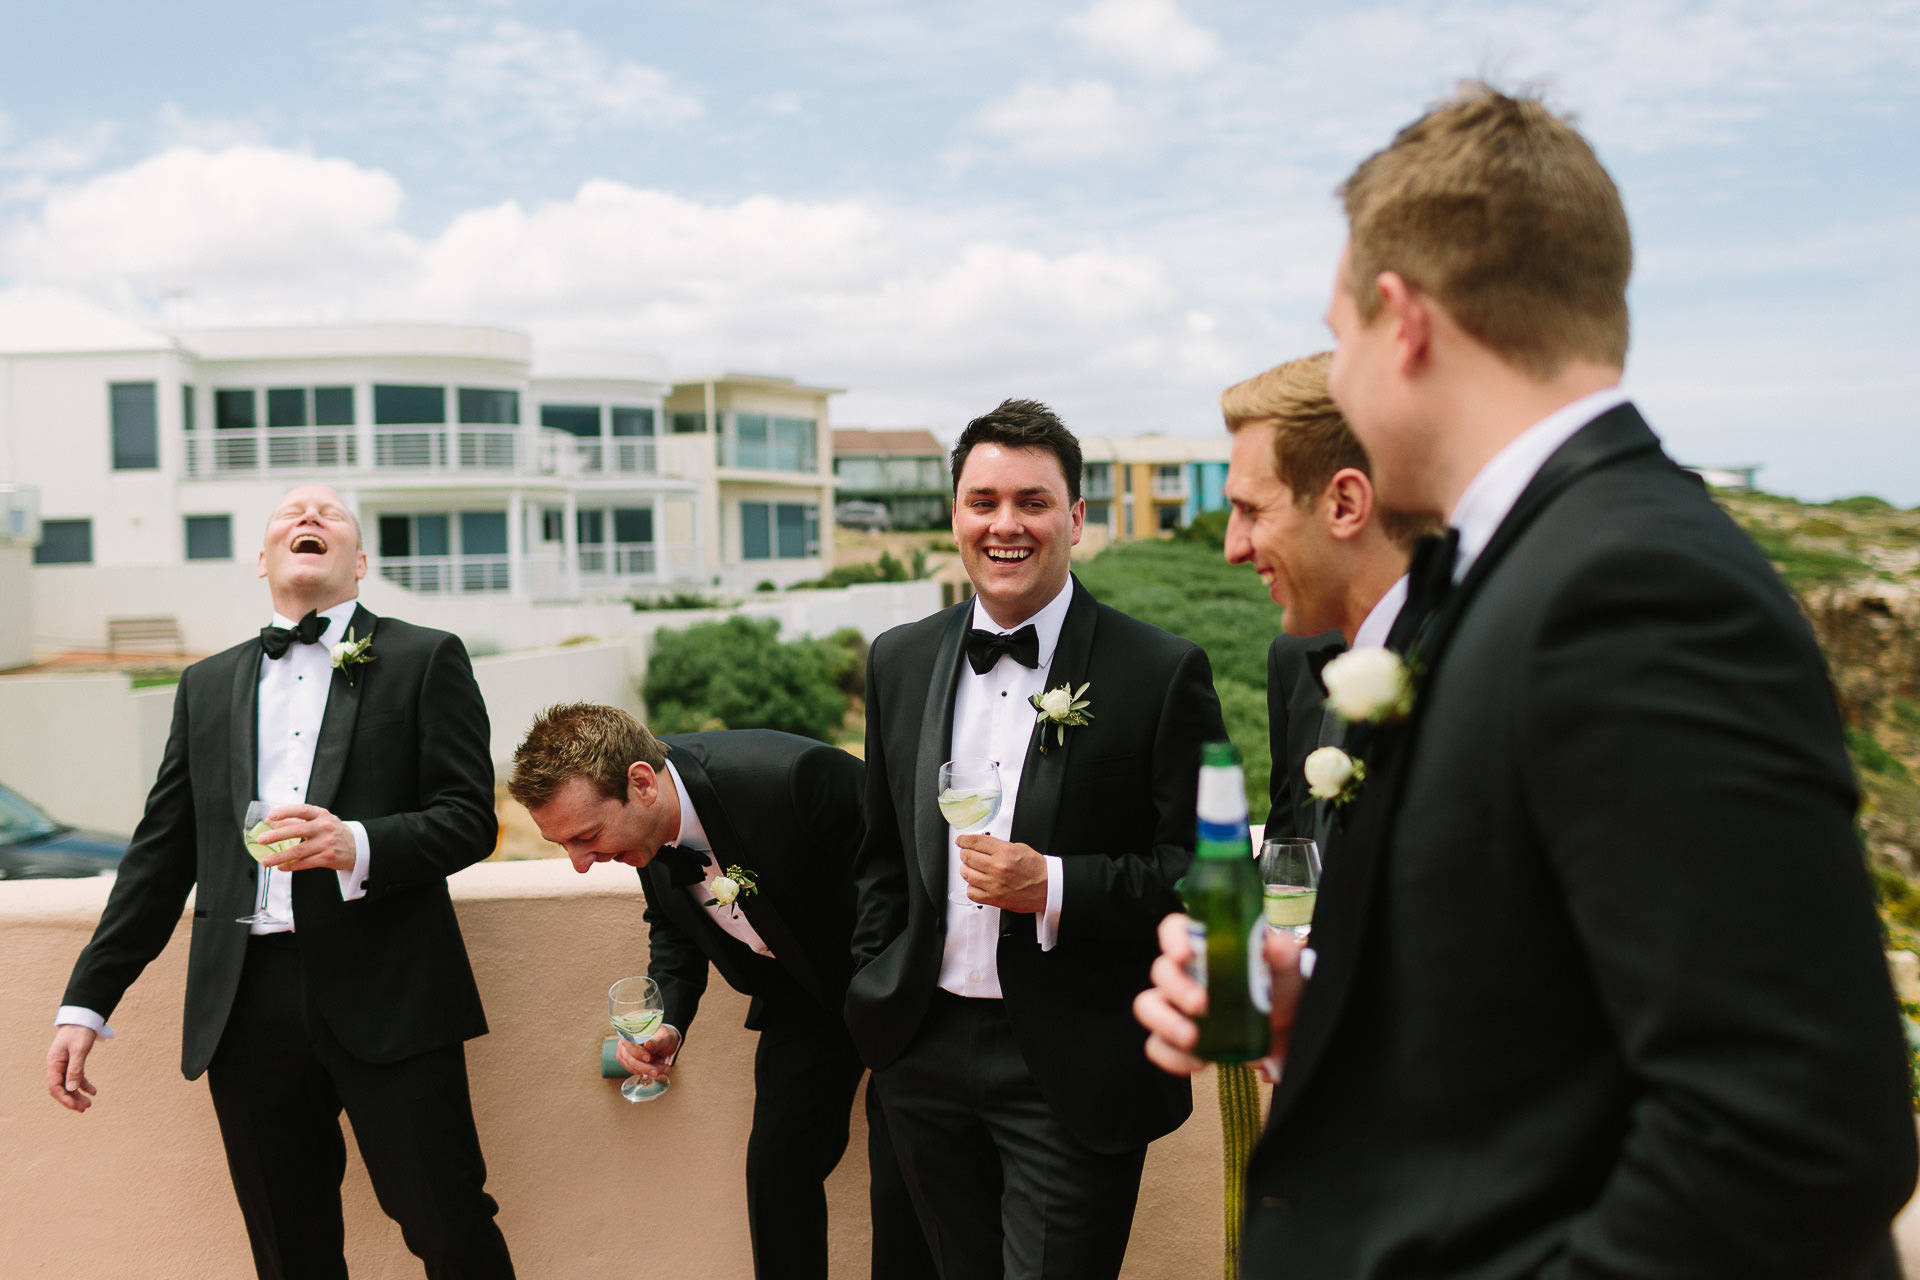 Groom and groomsmen laughing, having fun, drinking outside